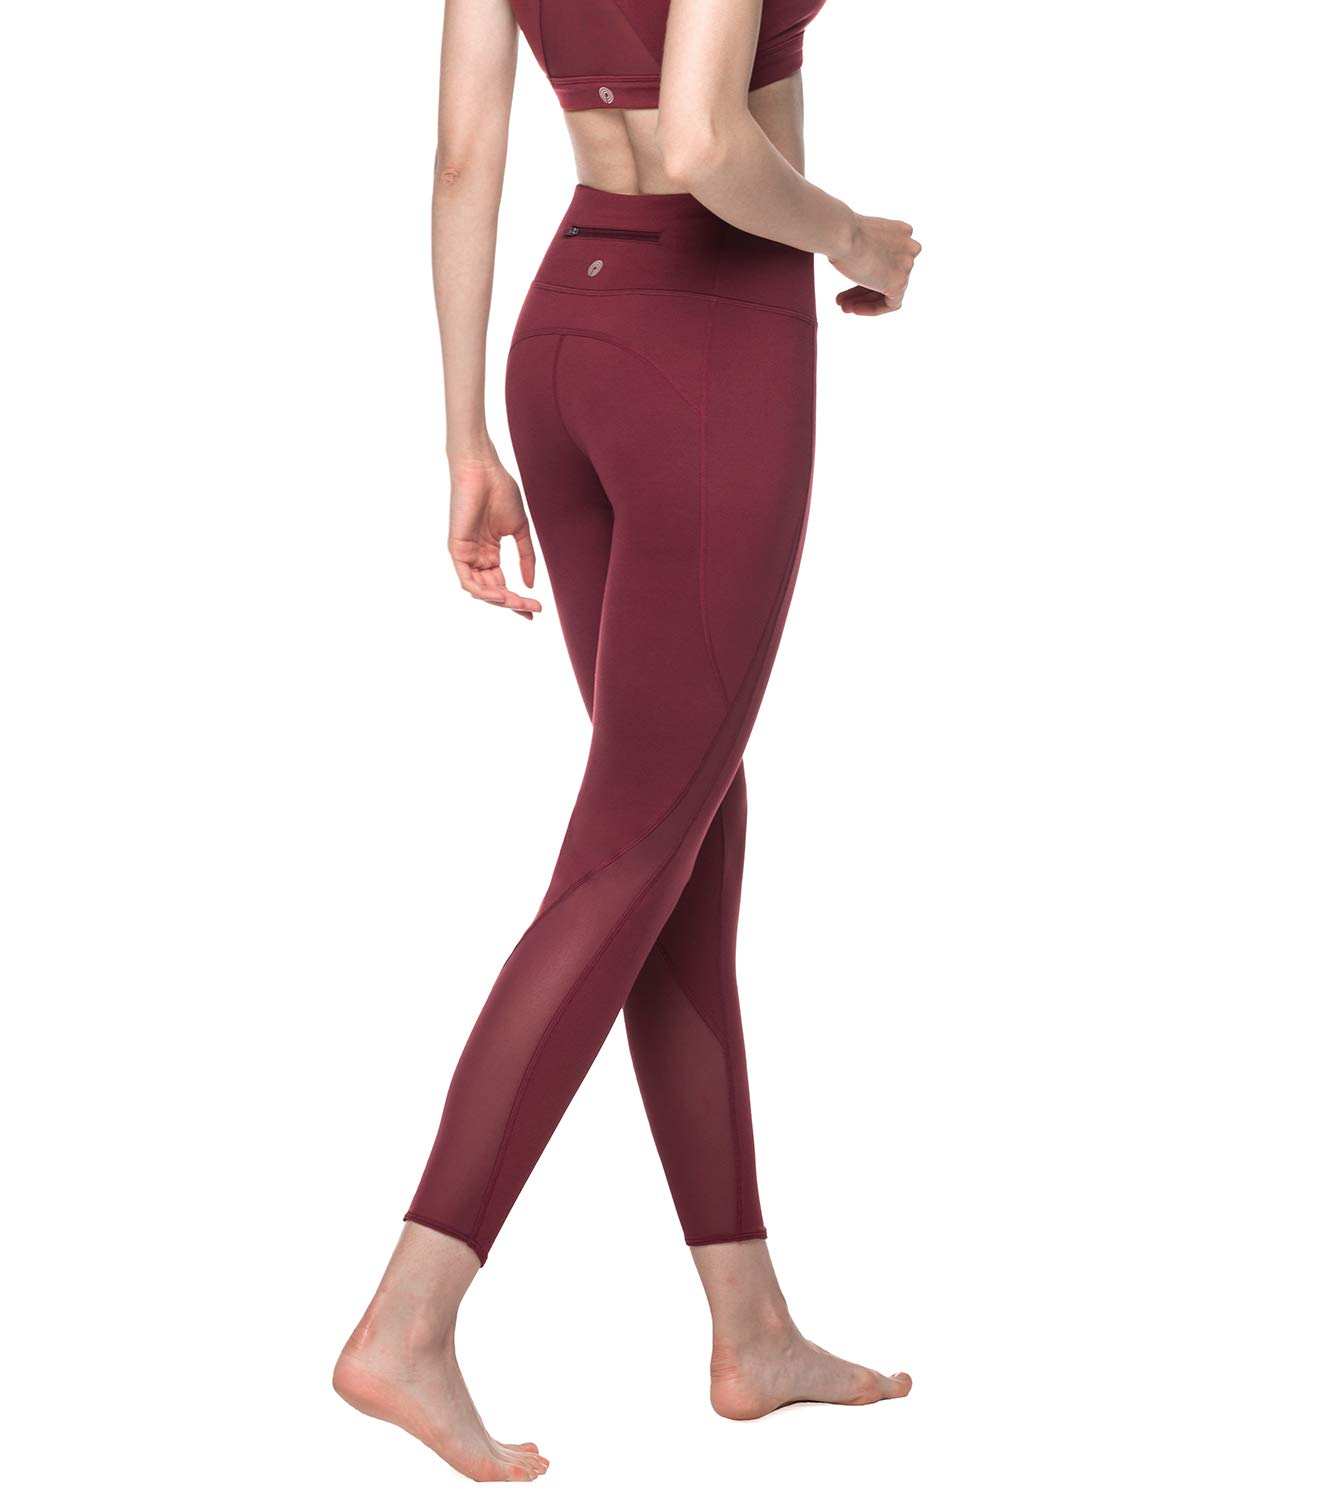 Lapasa Women's Leggings - TUMMY CONTROL - High Waist with Mesh Panels - Yoga Pants, Running, Gym & Workout - Hidden Pocket - L22